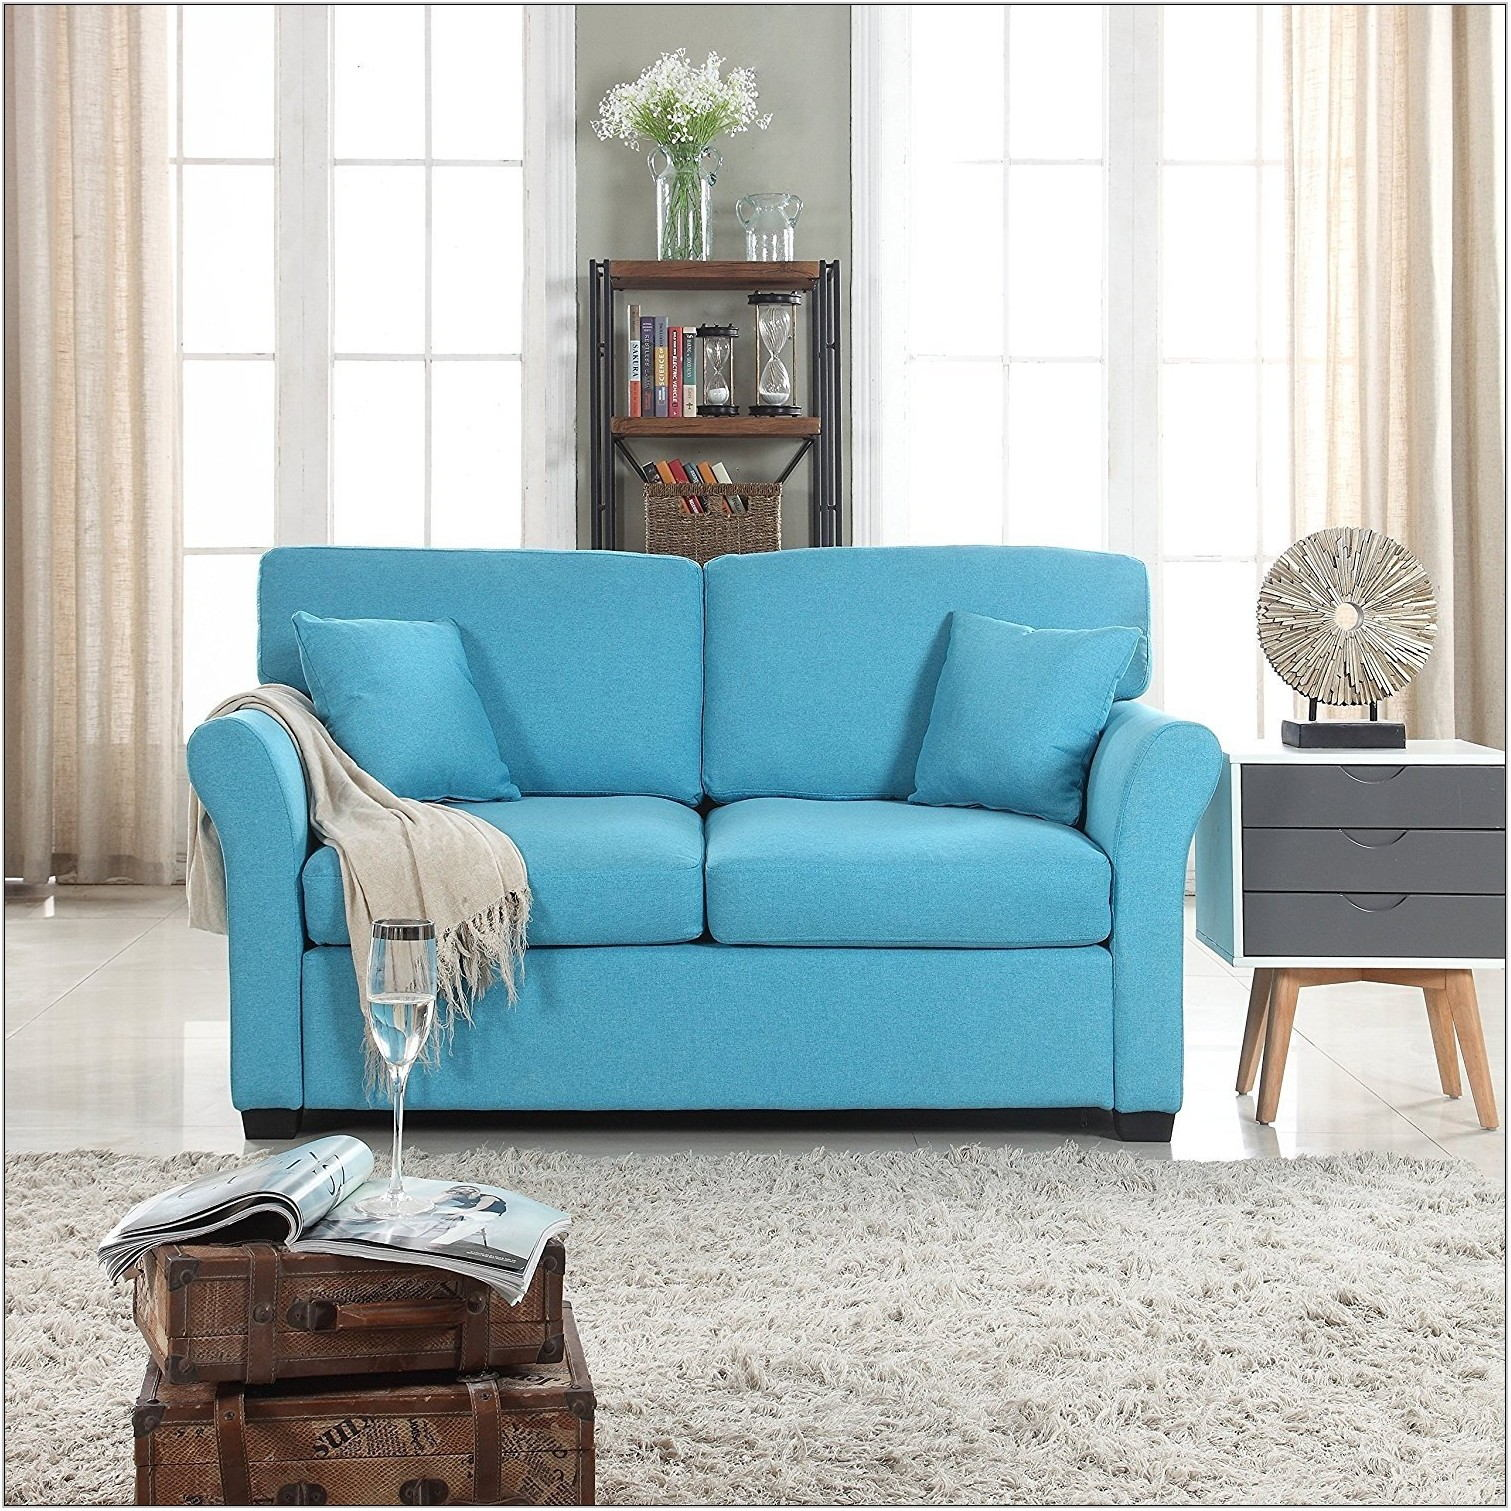 Loveseat For Small Living Room